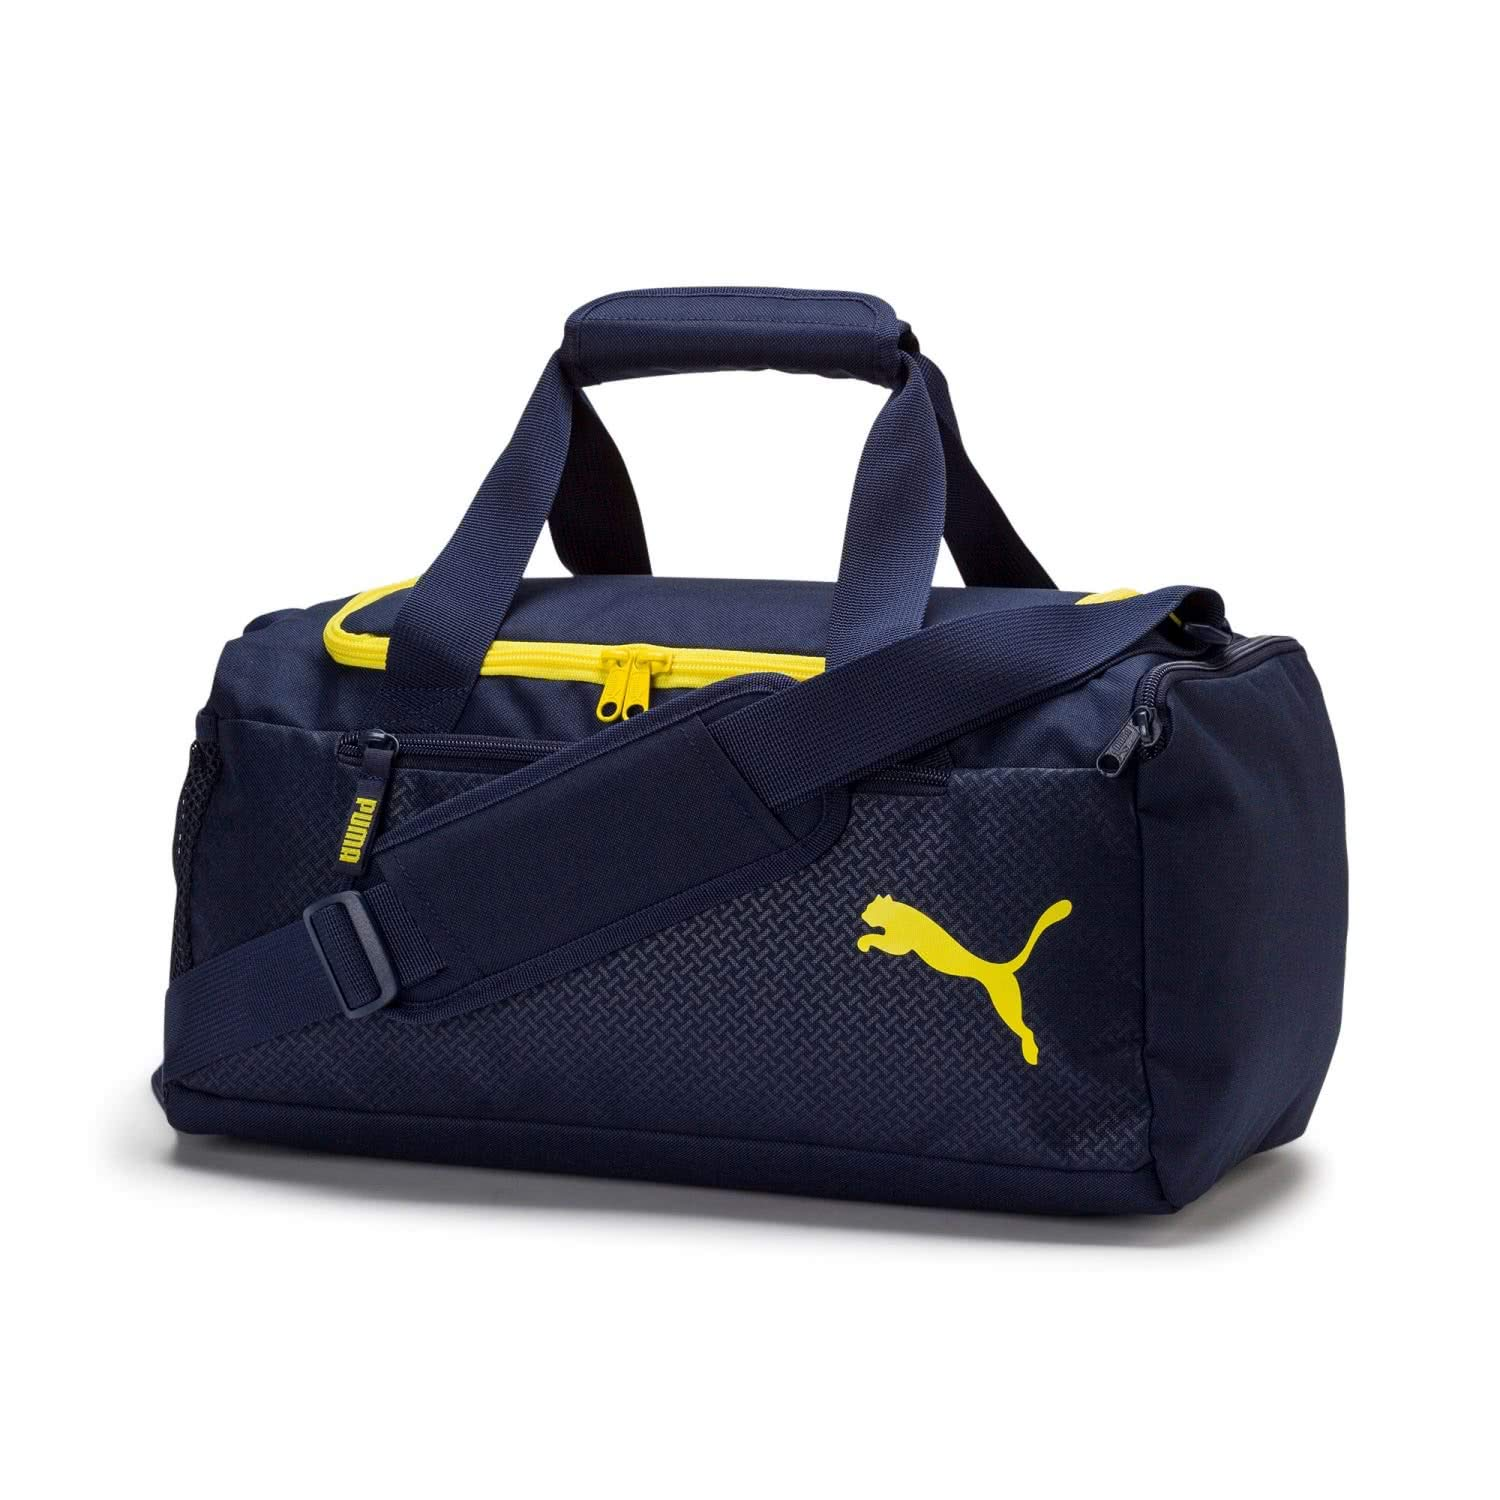 Puma Fundamentals Sports Bag XS Sac Mixte Peacoat OSFA PUMGG|#Puma 75526